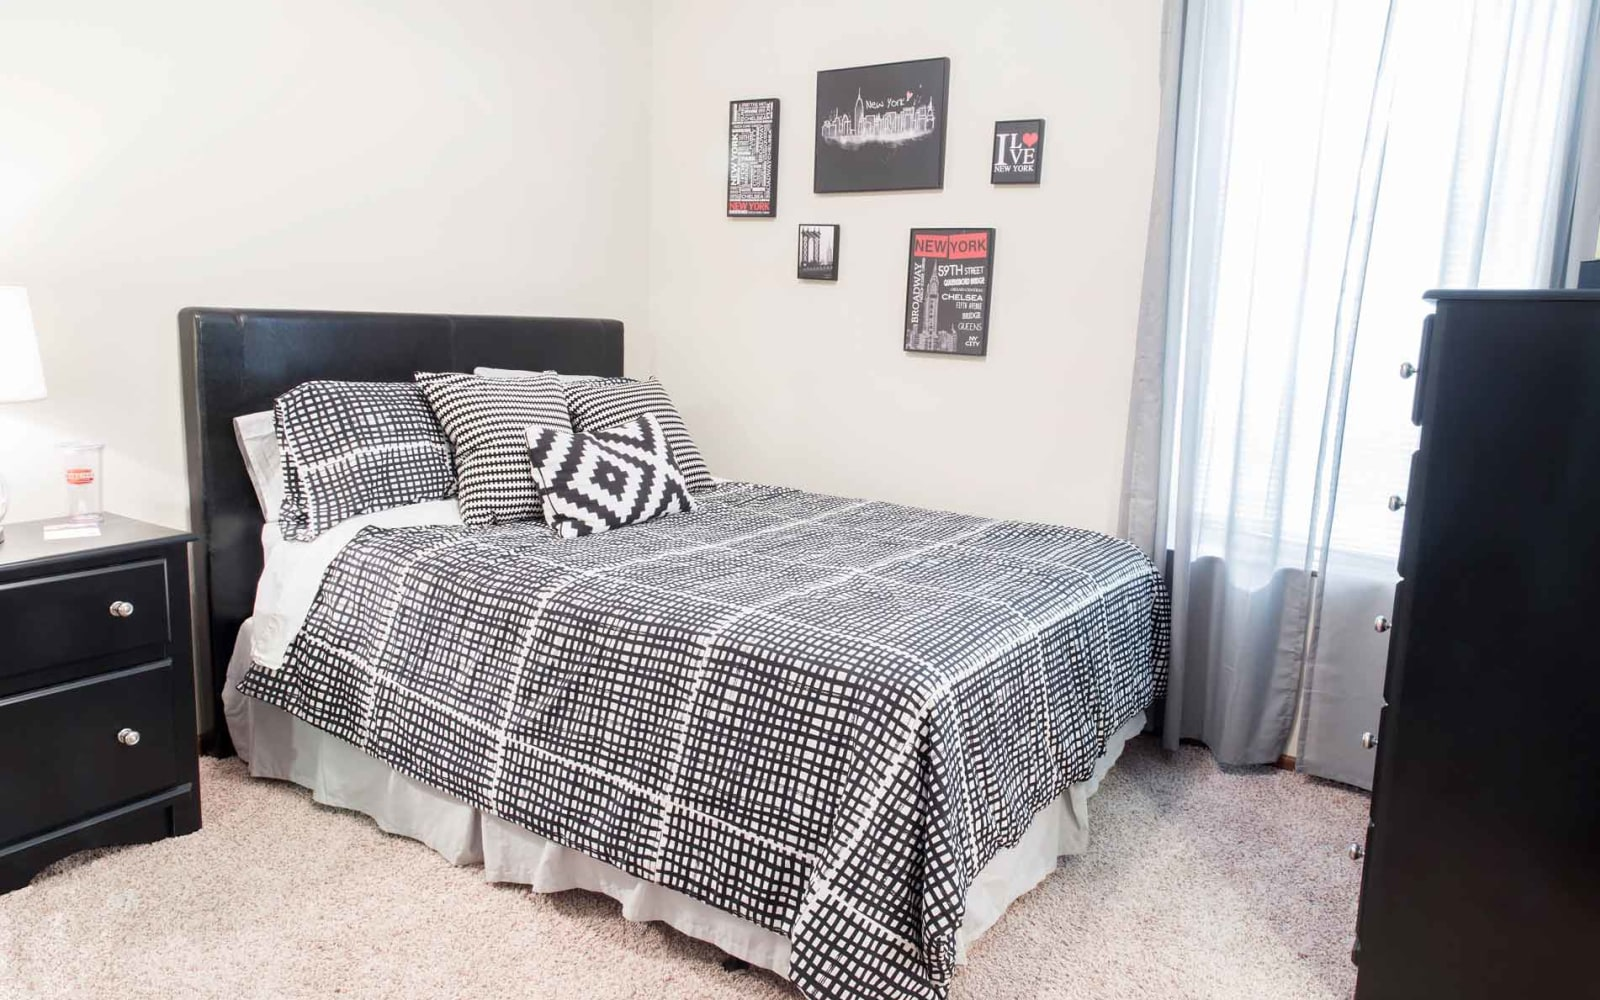 Spacious bedroom with a window at Prairie Pointe Student Living in Ankeny, Iowa